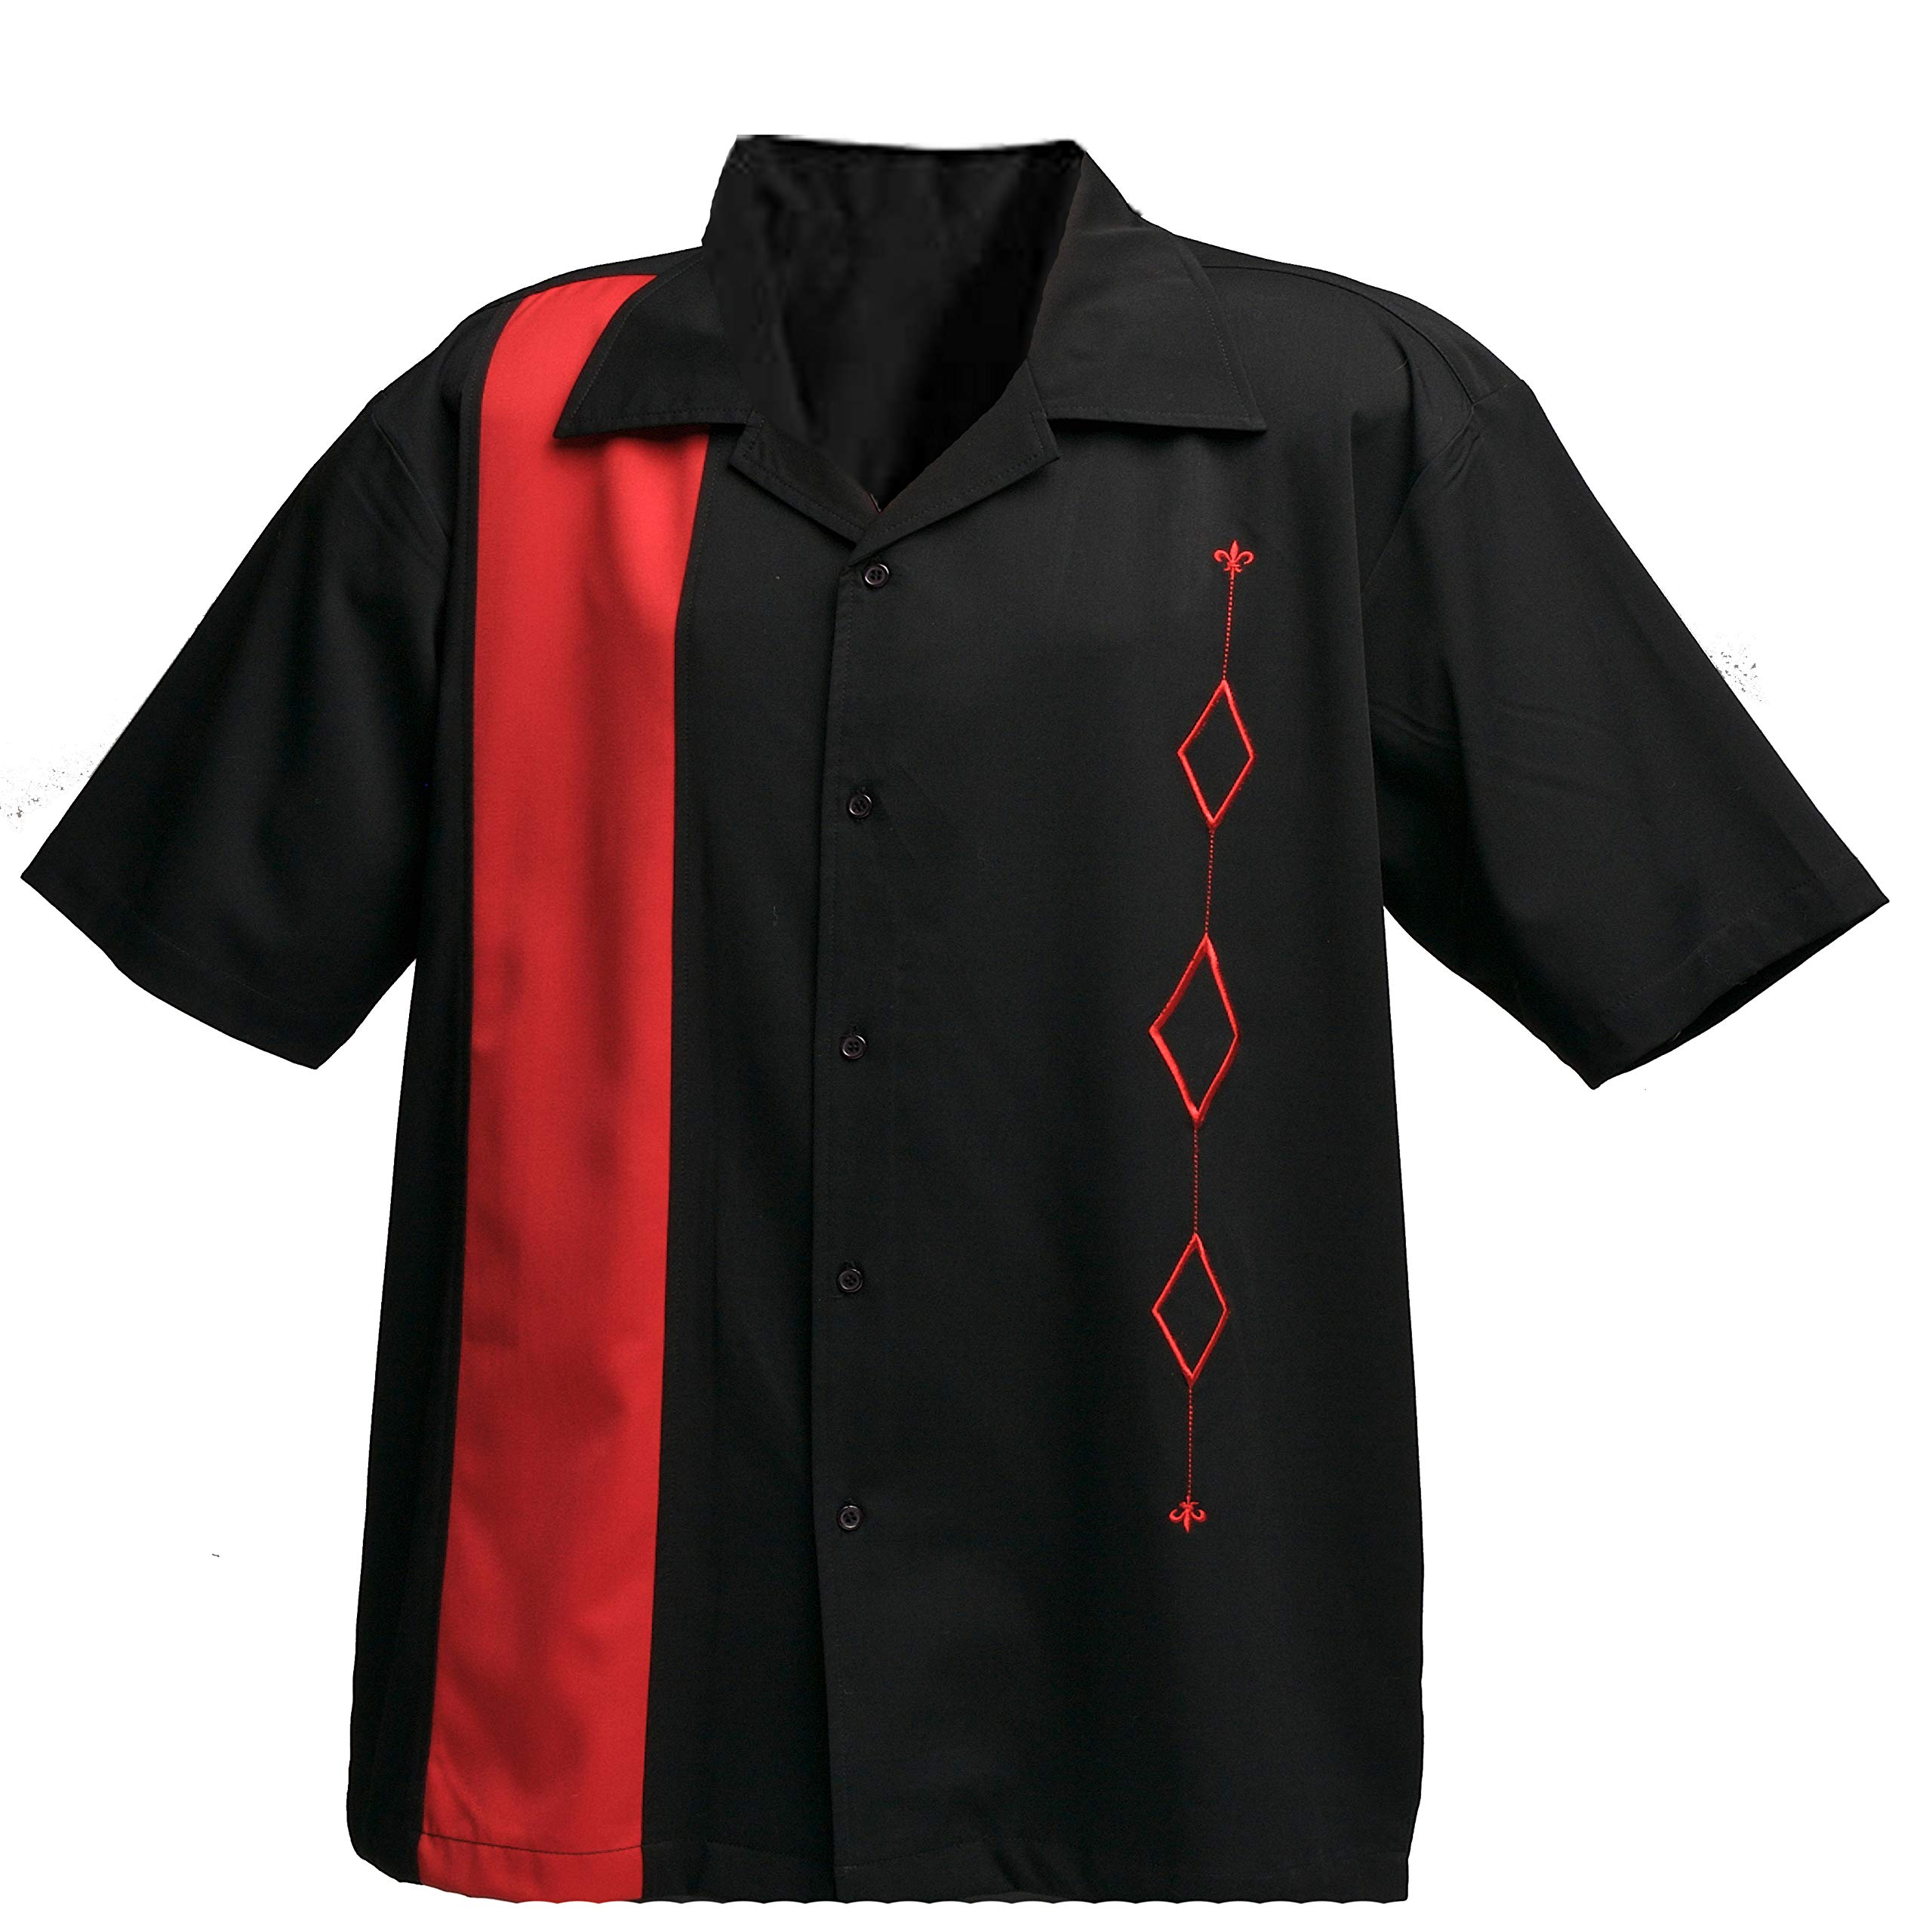 Designs by Attila Mens Retro Bowling Shirt, Red & Black, Size Medium by Designs by Attila